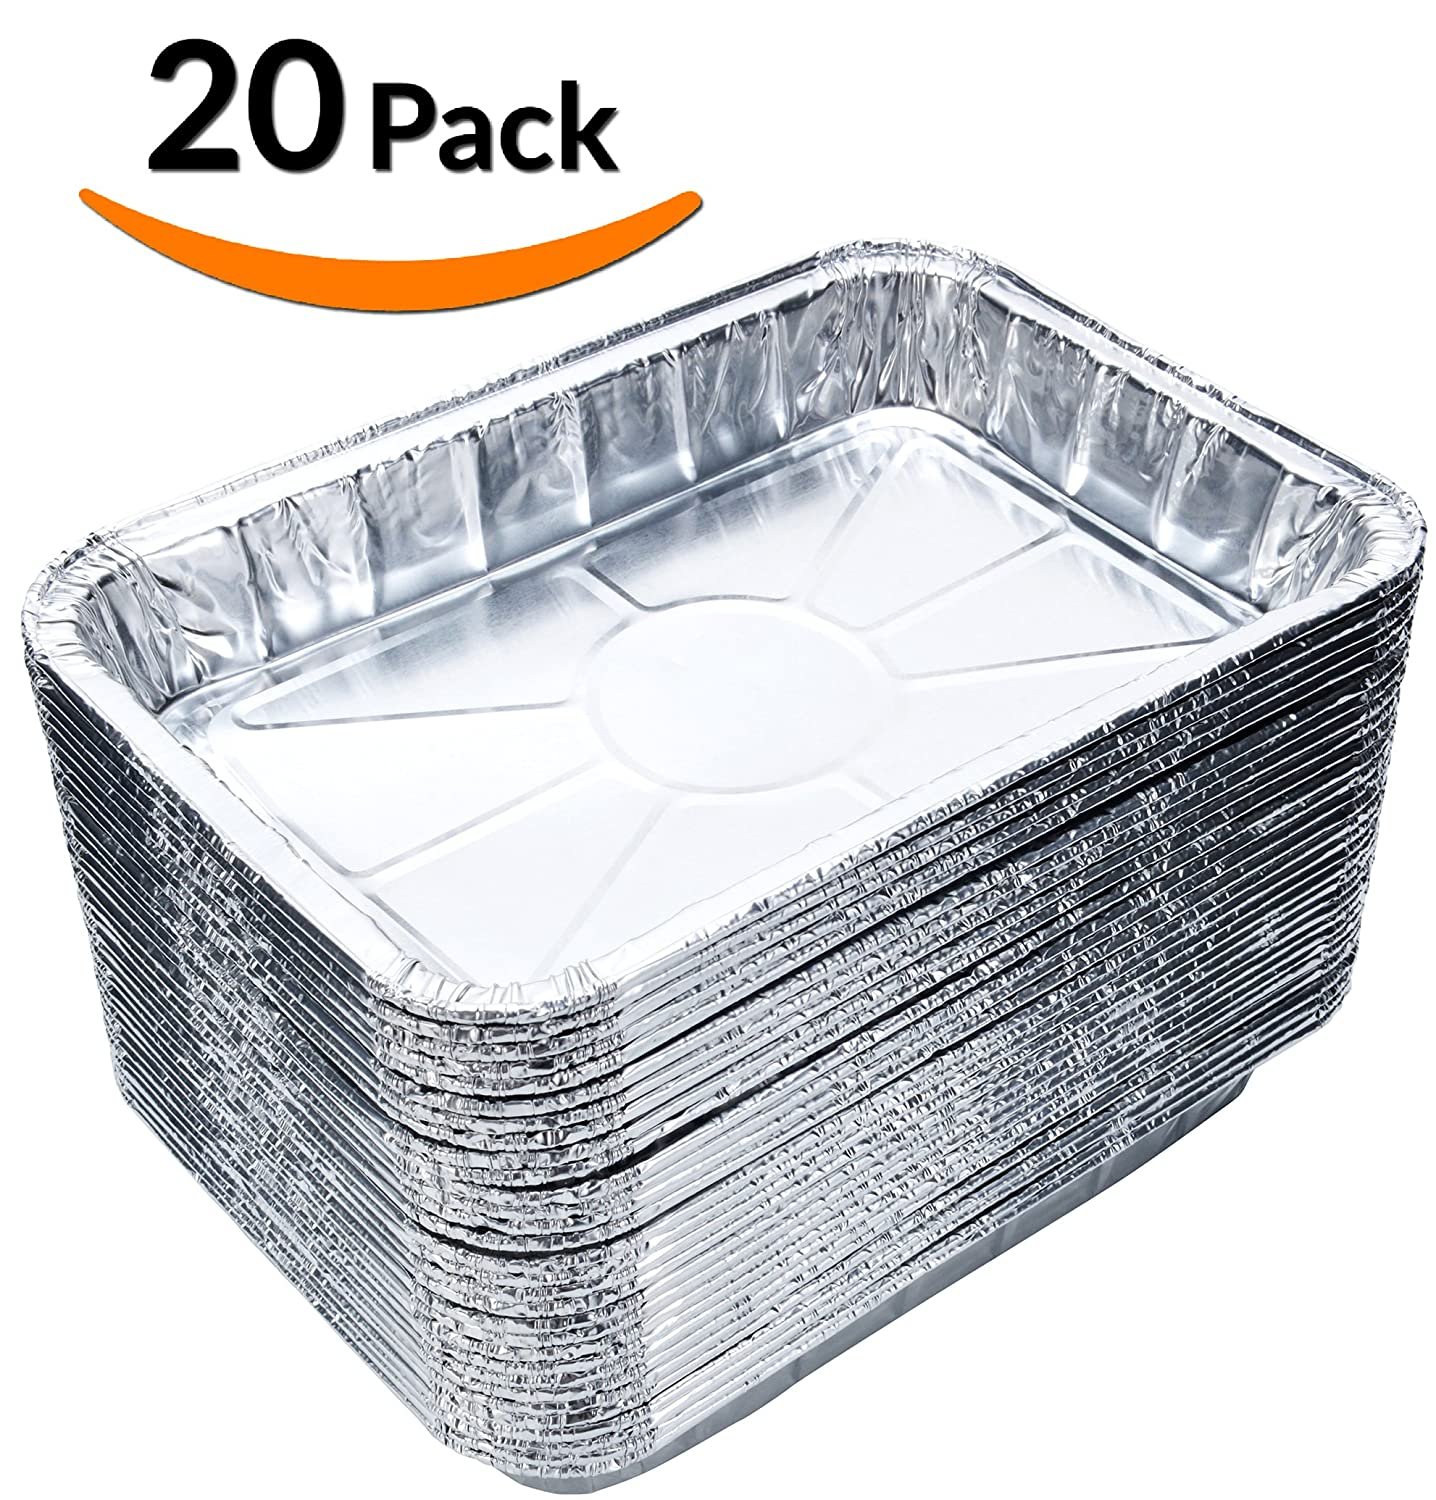 "DOBI (20-Pack) Toaster Oven Pans - Disposable Aluminum Foil Toaster Oven Pans, Standard Size - 8 1/2"" x 6"""